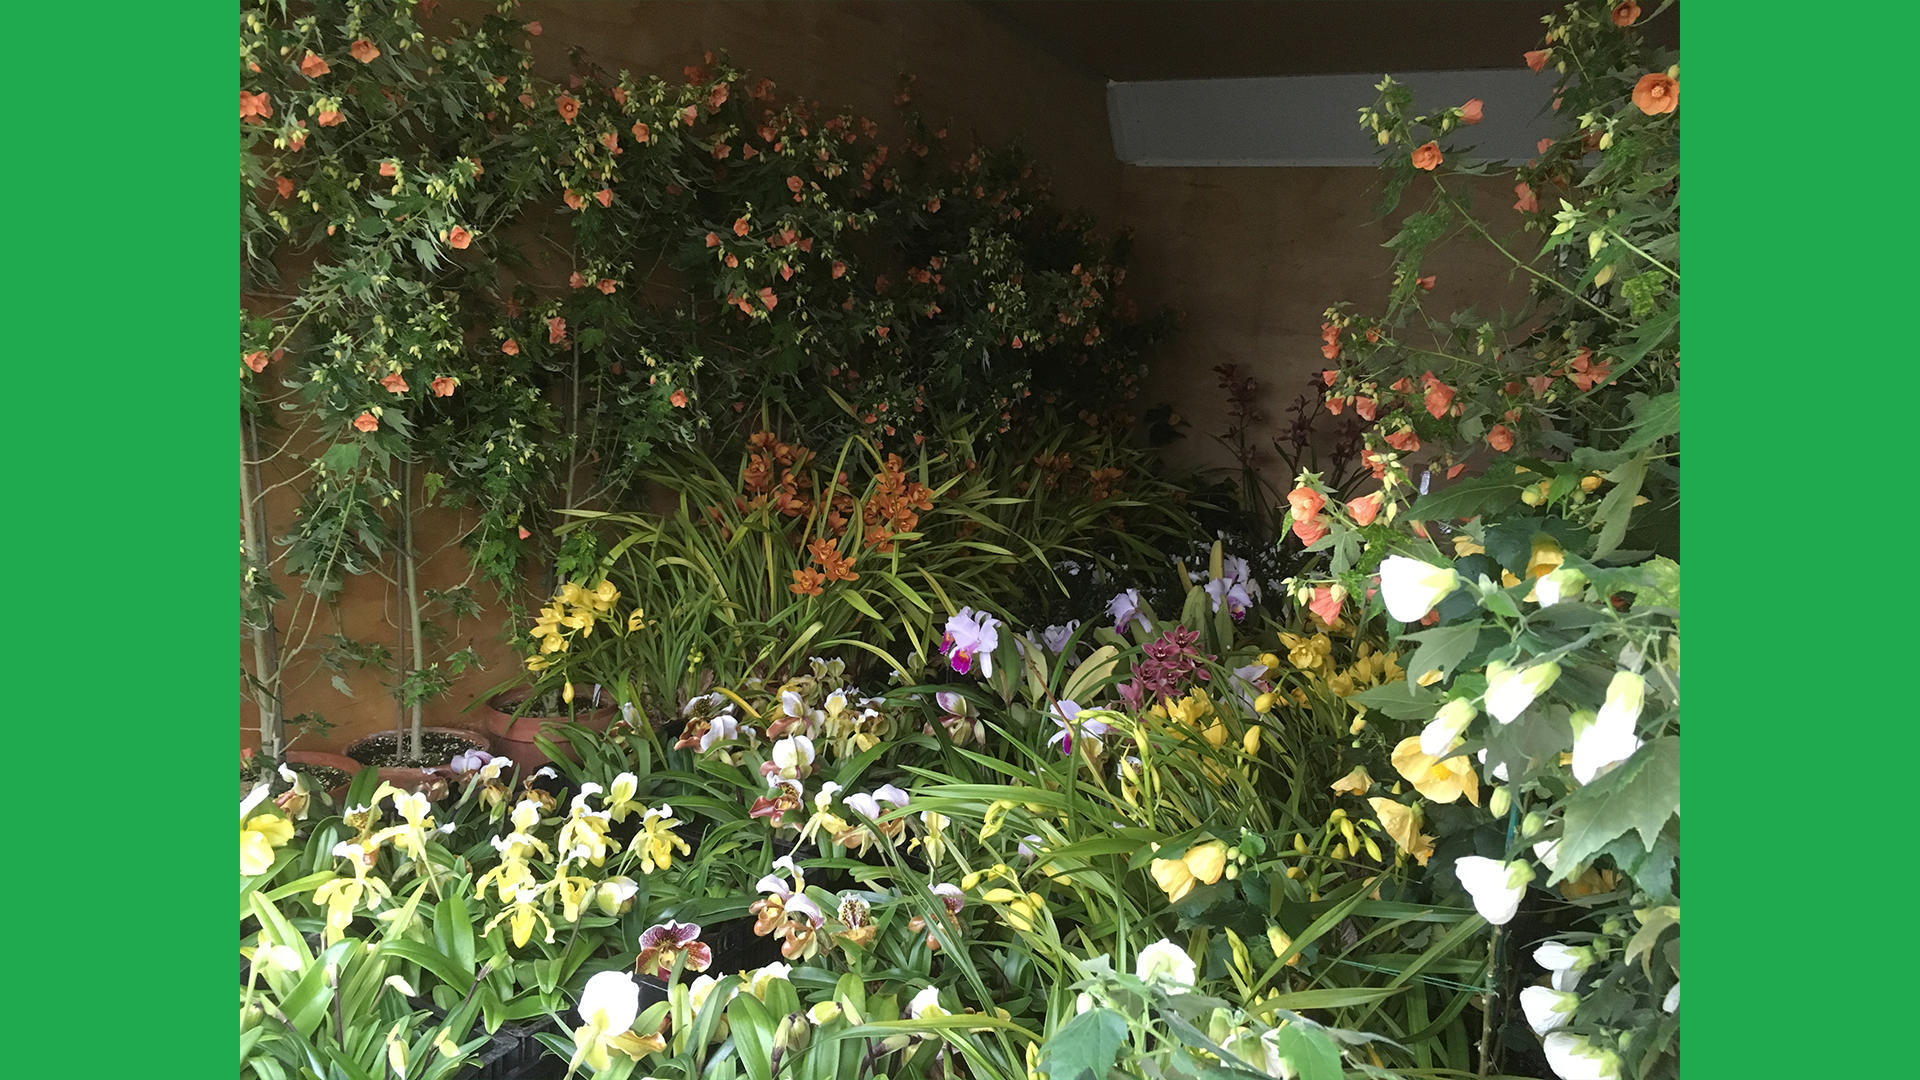 The same truck view, with all of the midwinter tropics for our January display.